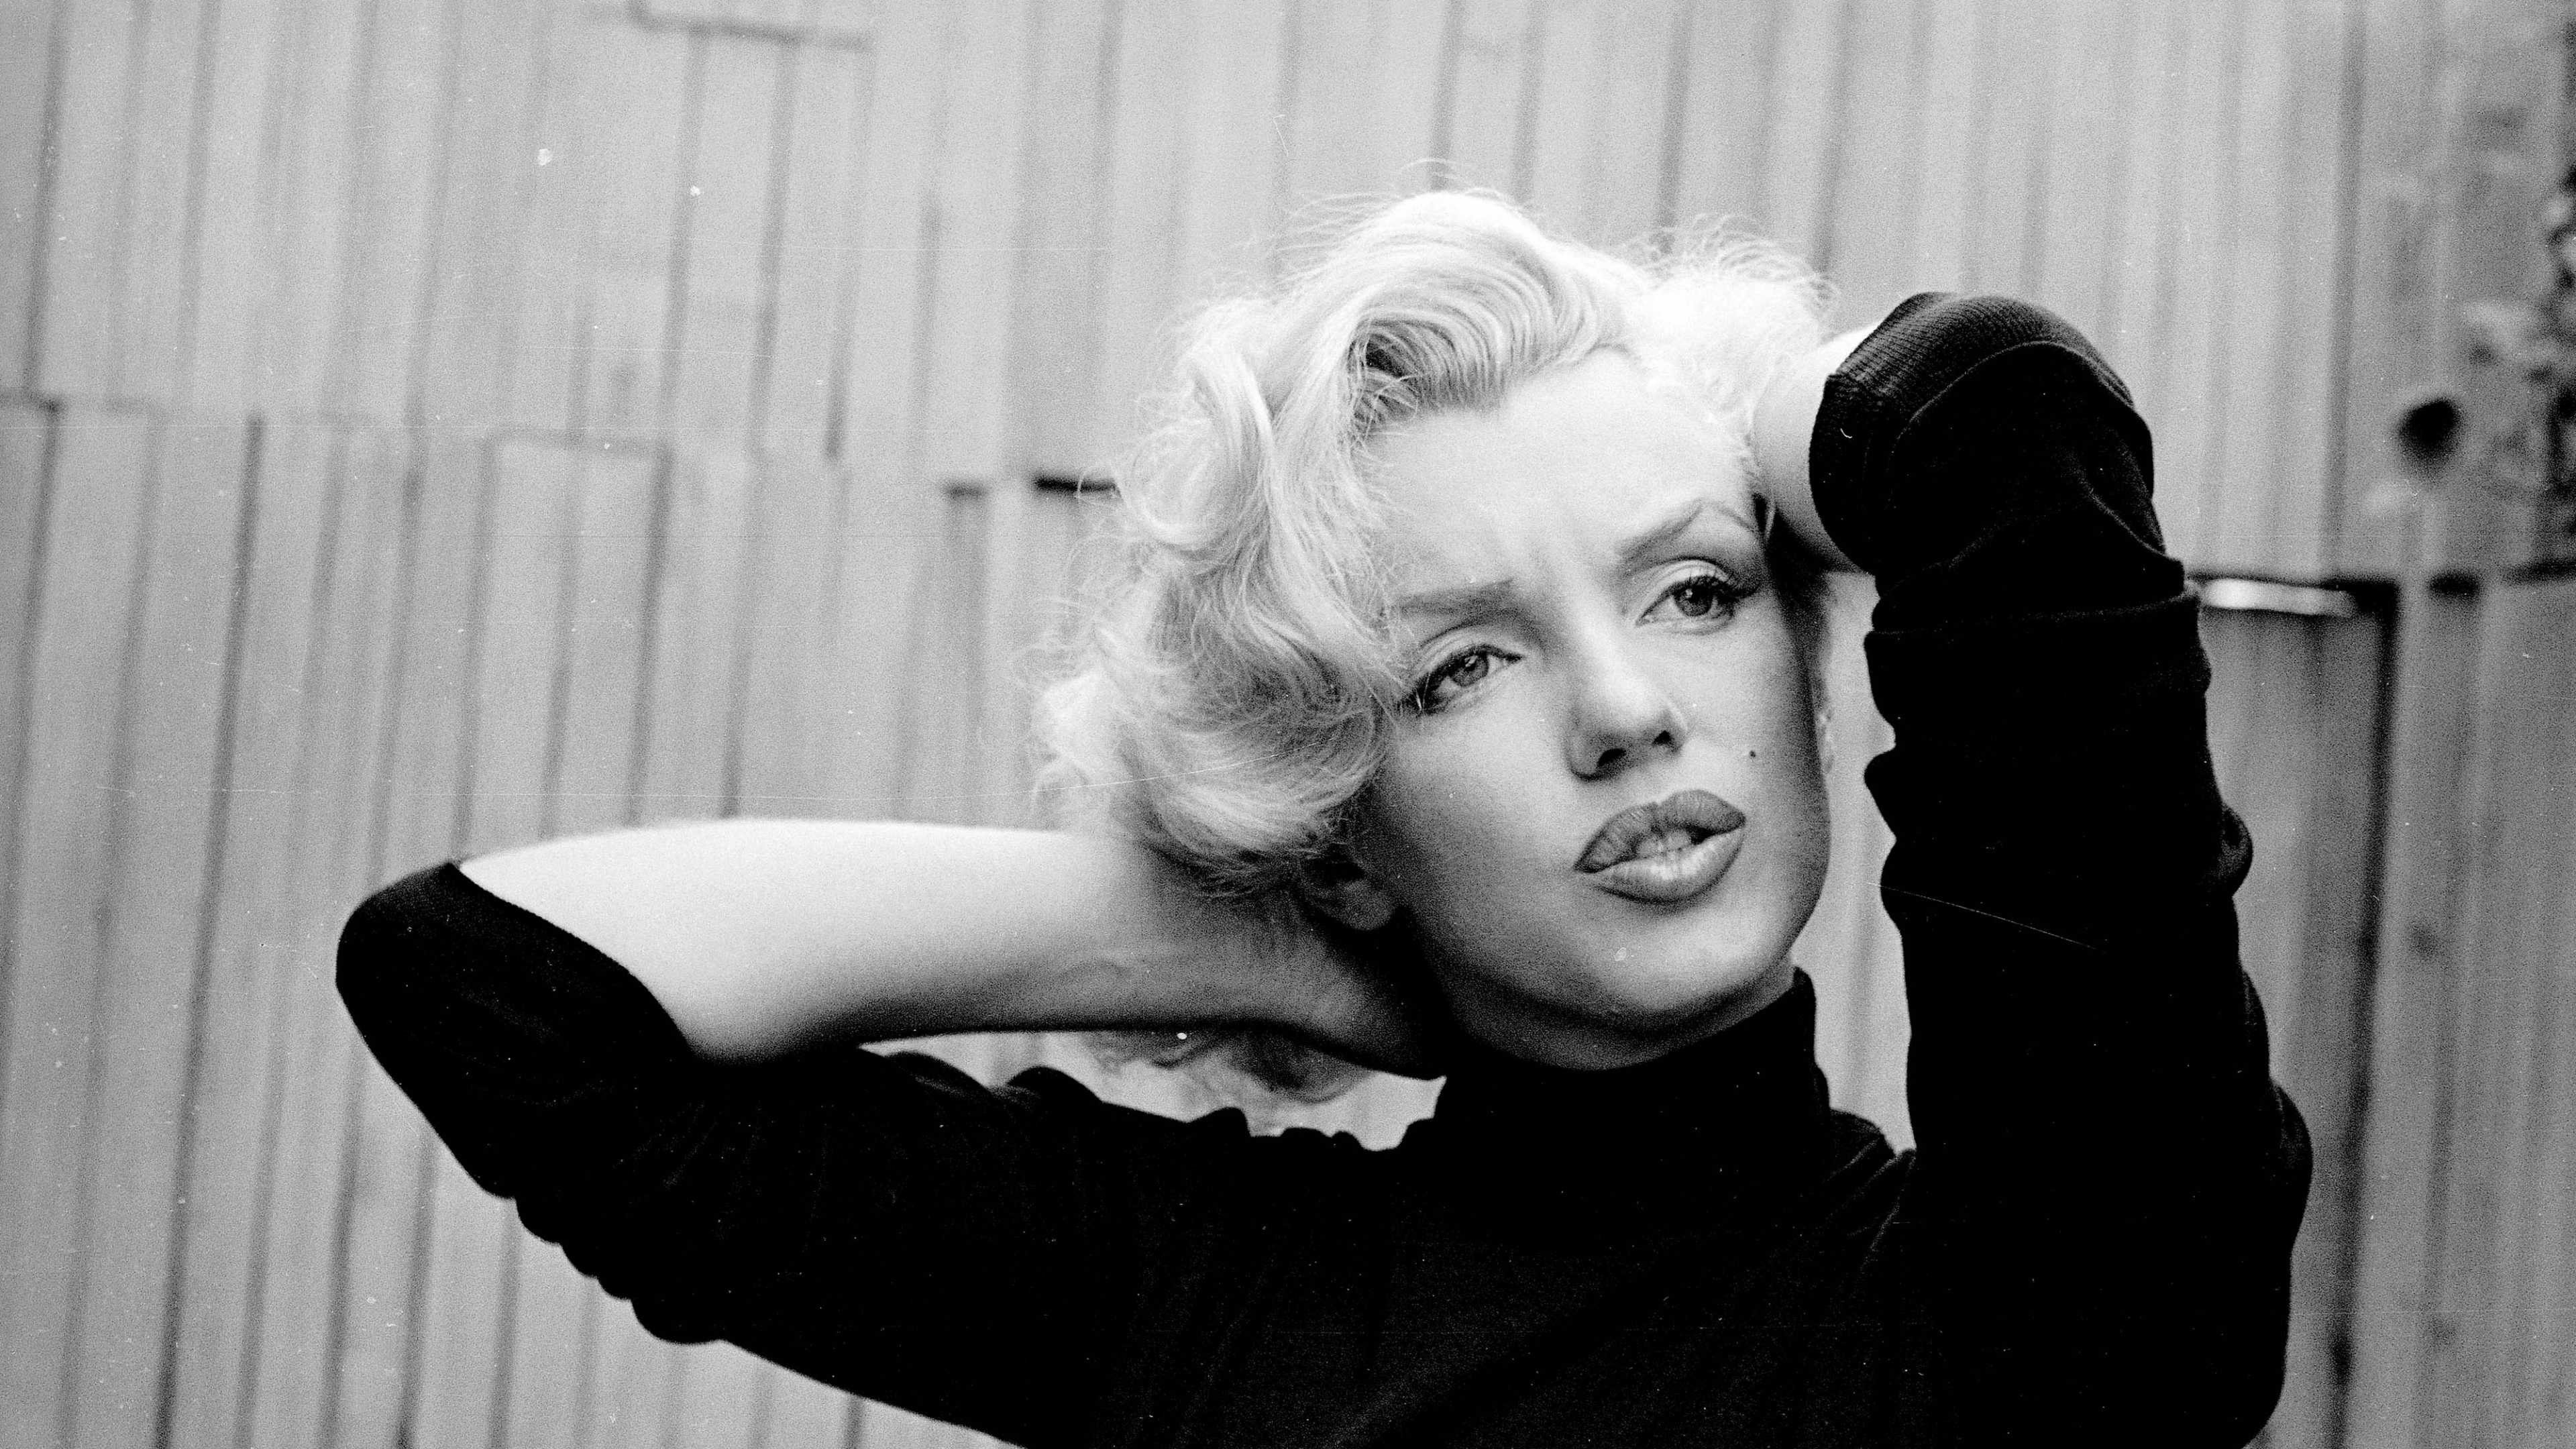 Res: 3840x2160, Marilyn Monroe Photos Hd Images For Laptop Ultra Desktop Backgrounds